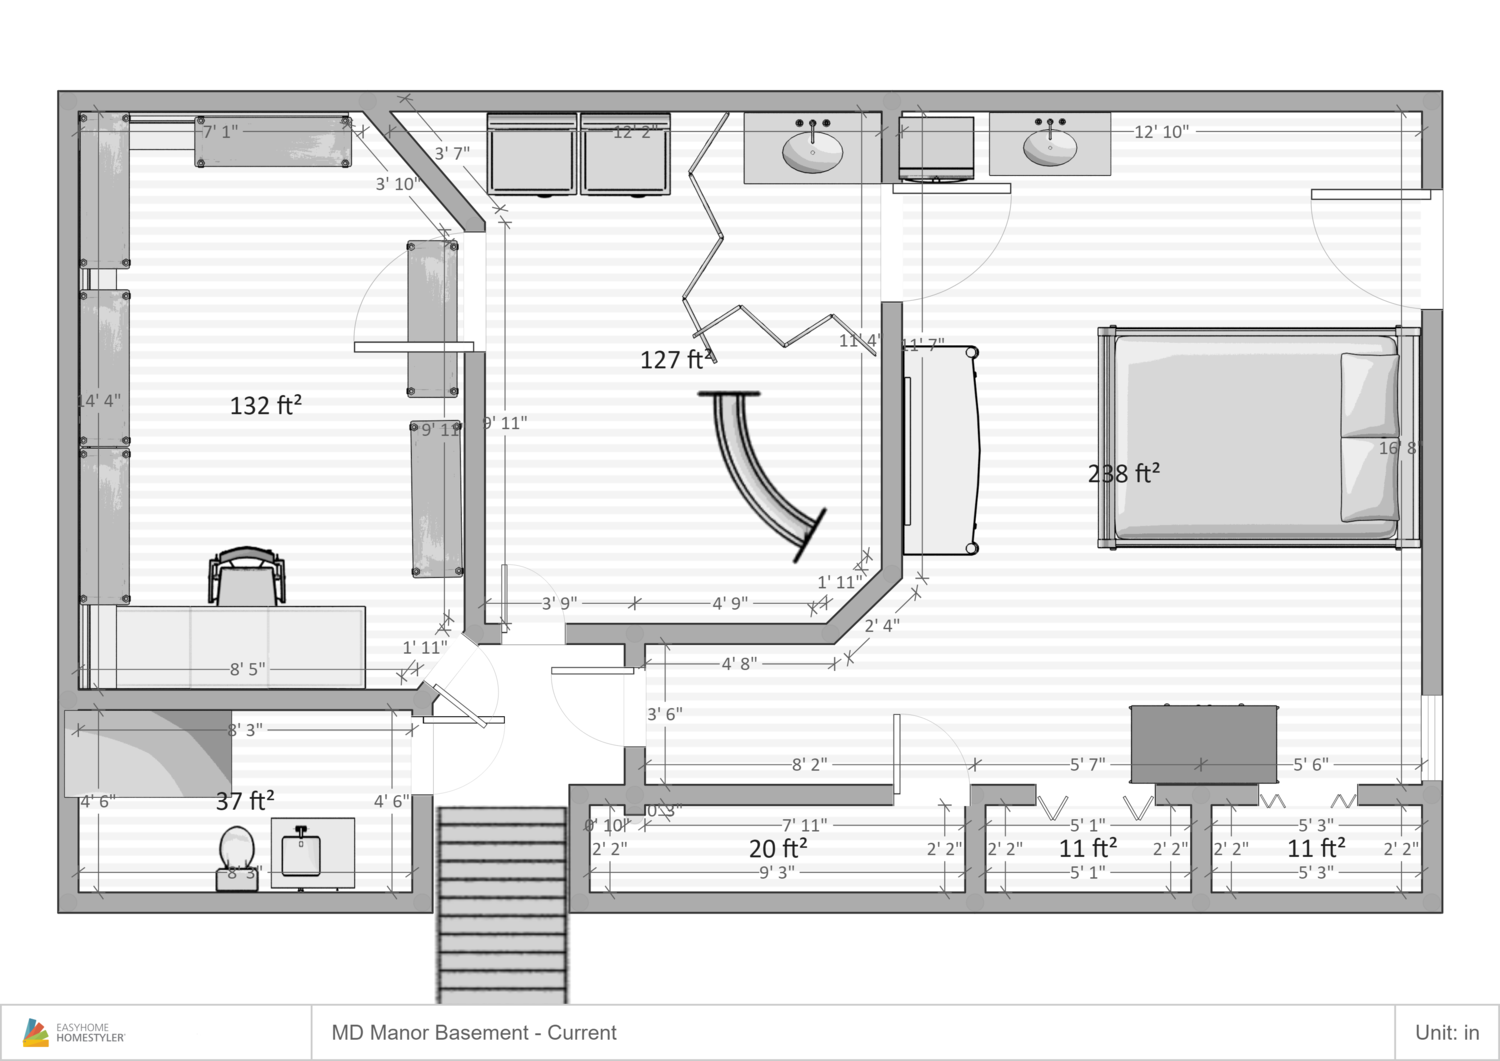 Basement Efficiency w/Private Entrance Kitchenette, private bathroom